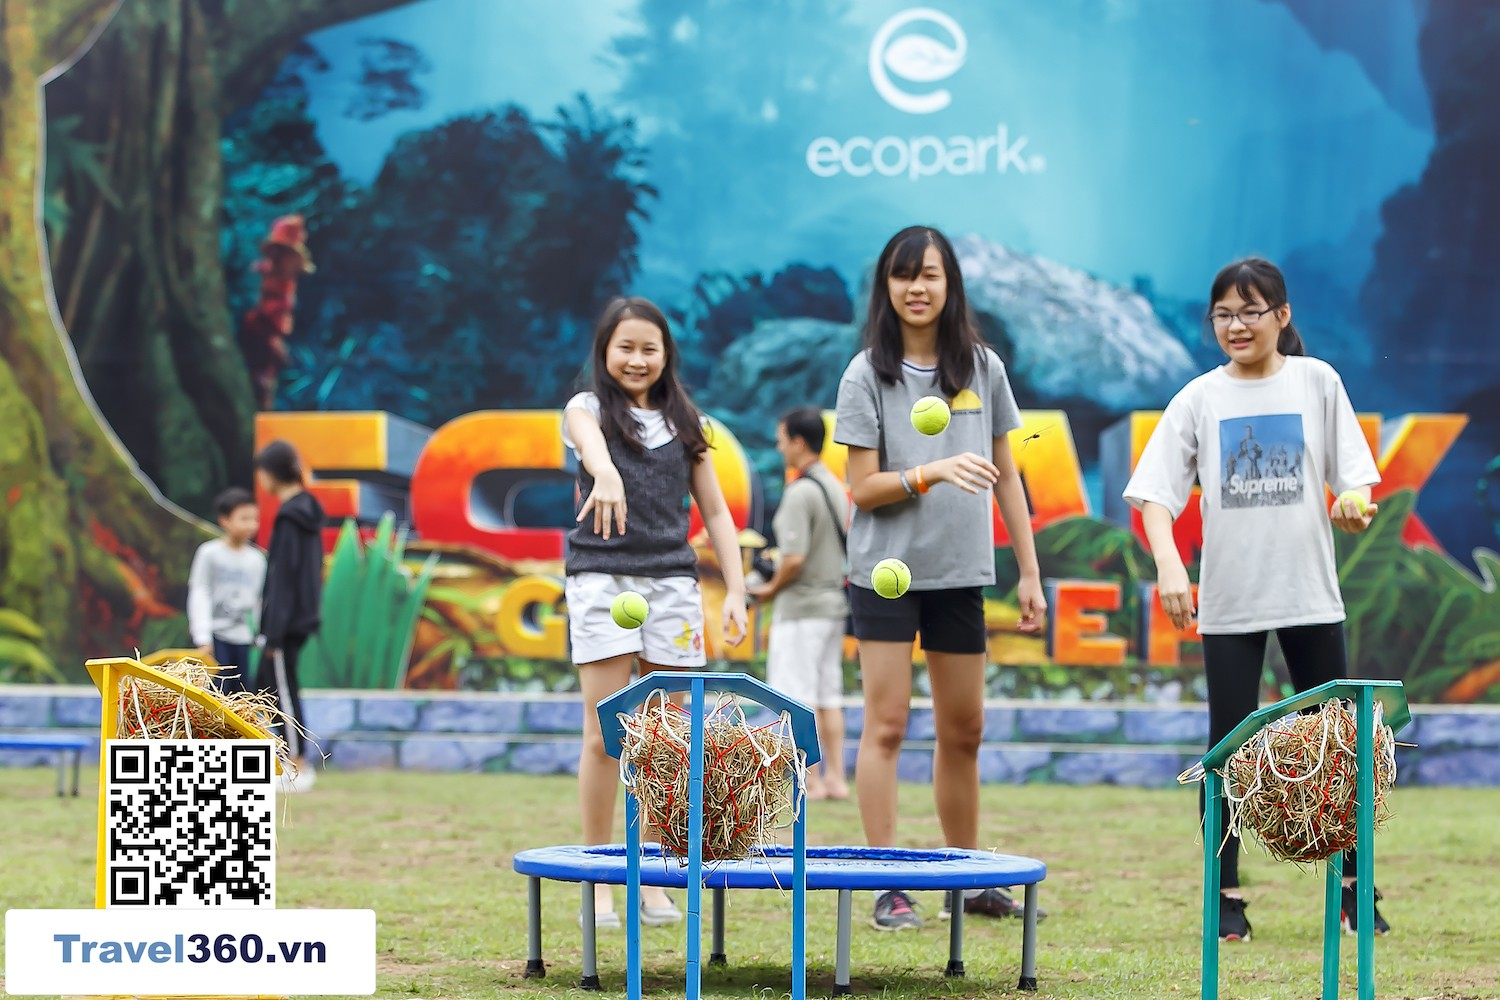 ecopark game